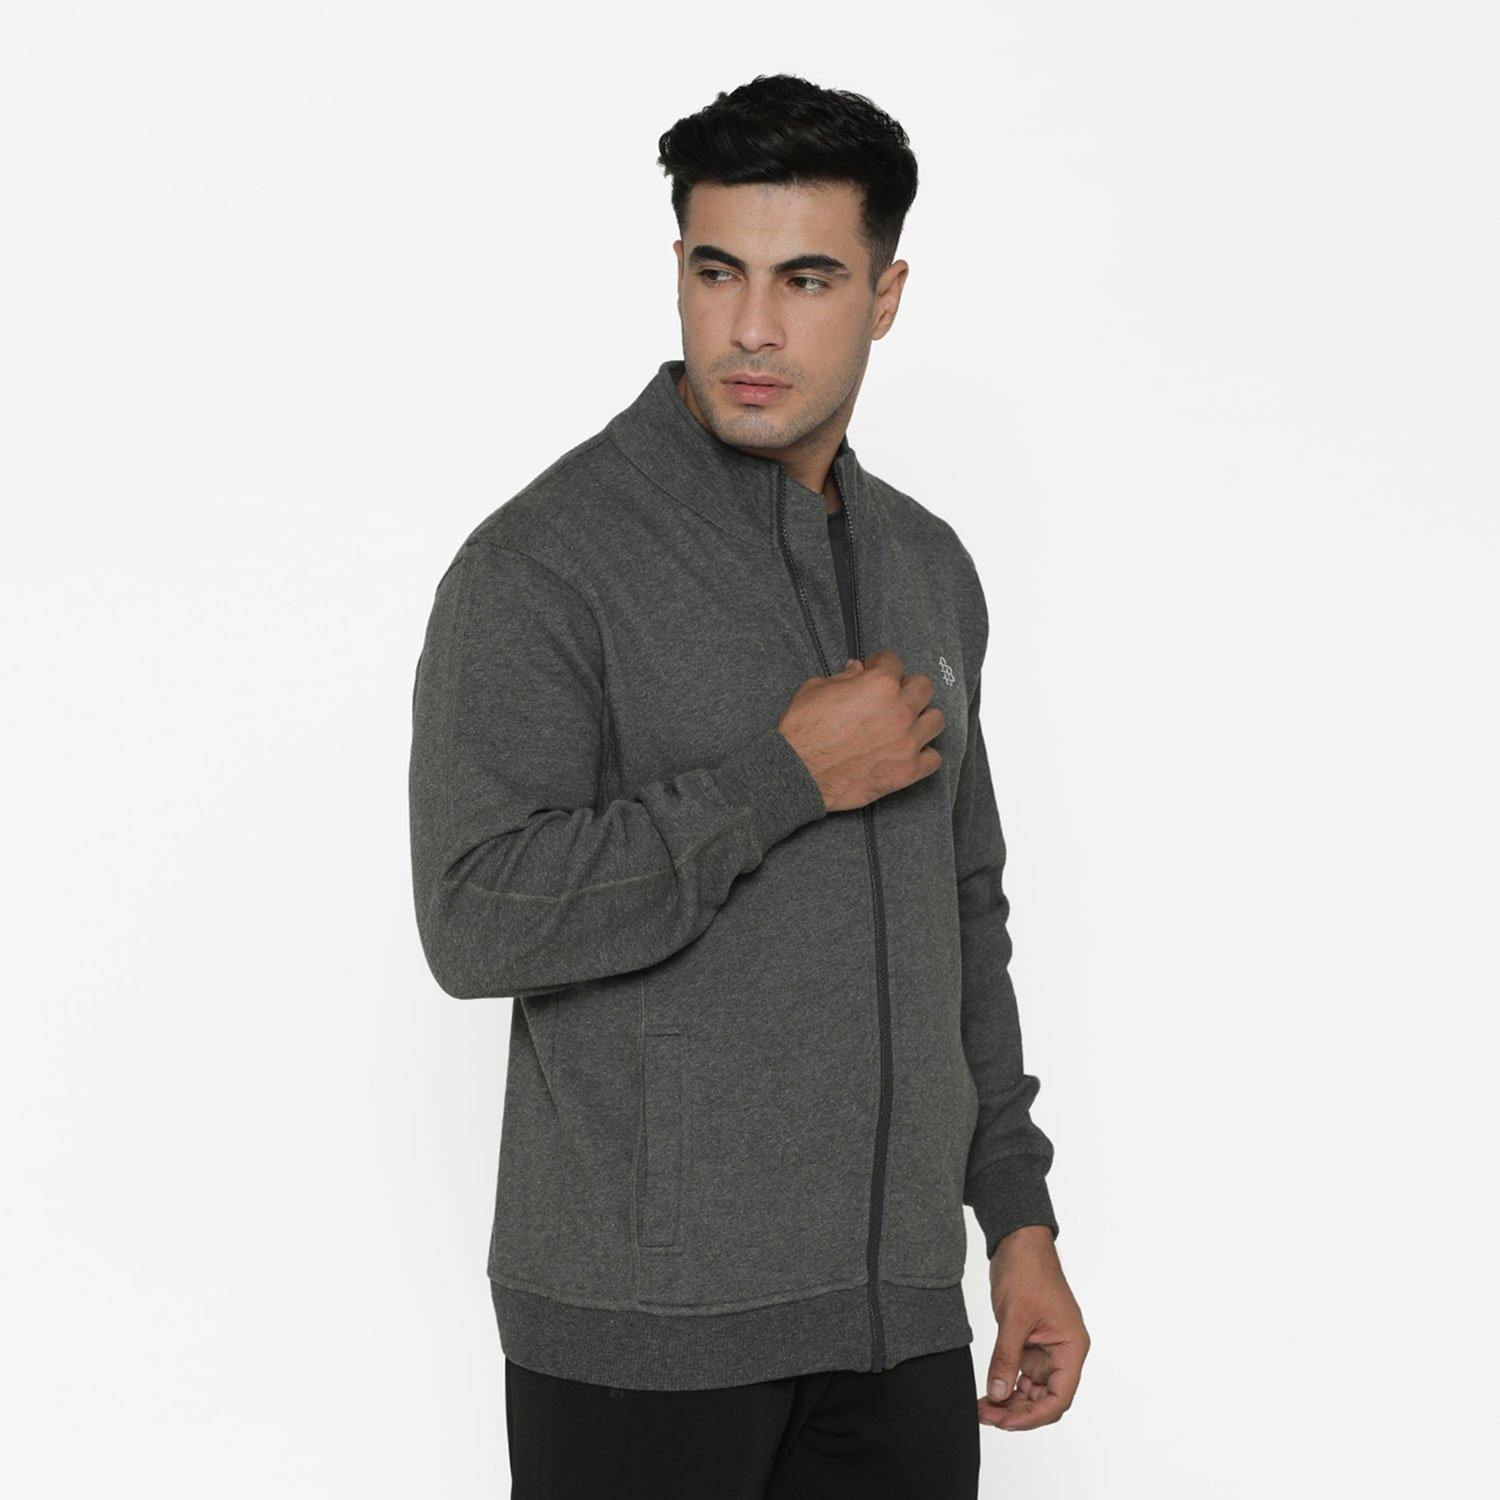 Men's Full Sleeve Plain Jacket